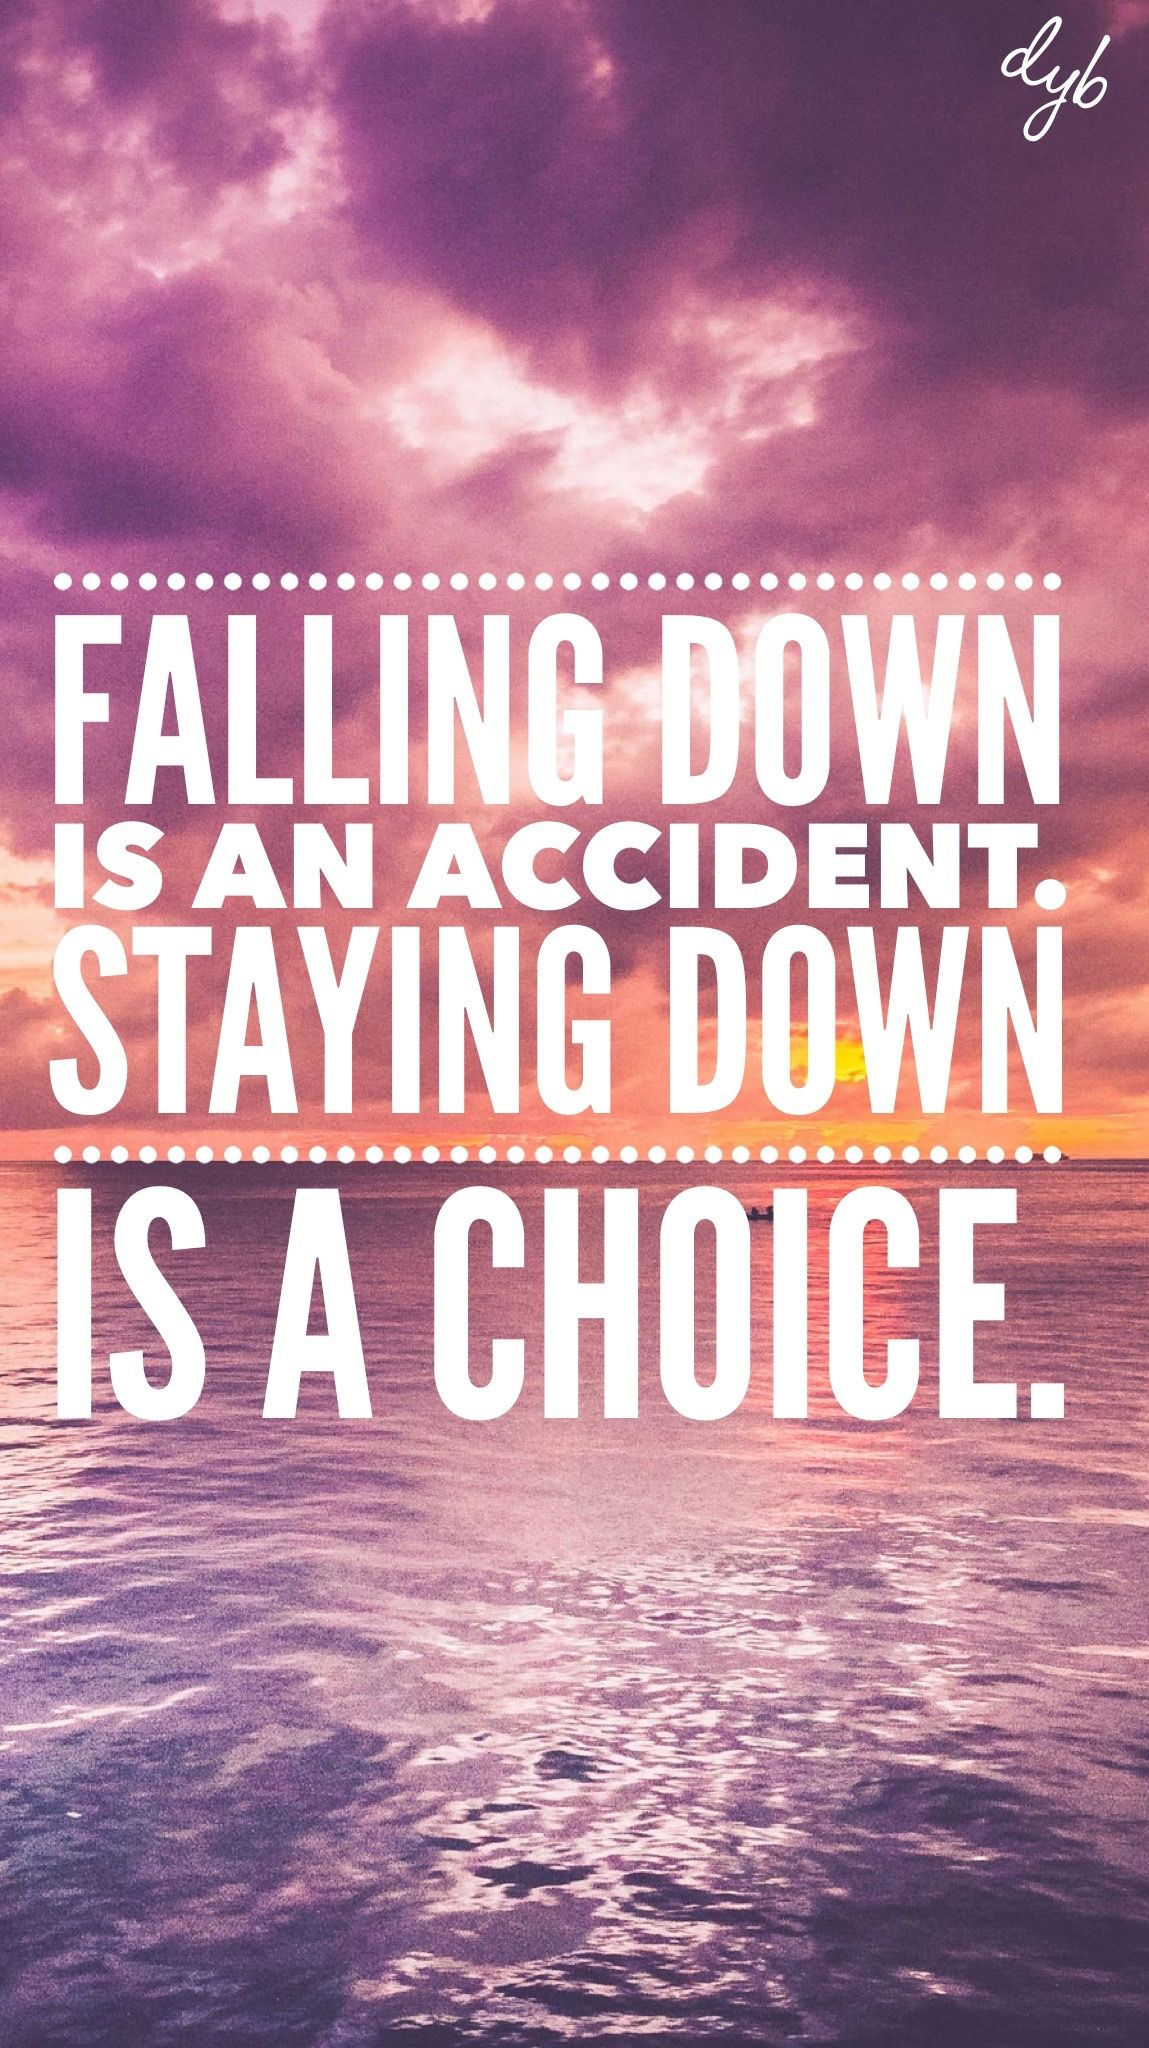 Falling Down Is An Accident Staying Down Is A Choice Dybintosuccess Motivation Motivational Motivated Inspiration In Monday Motivation Quotes Words